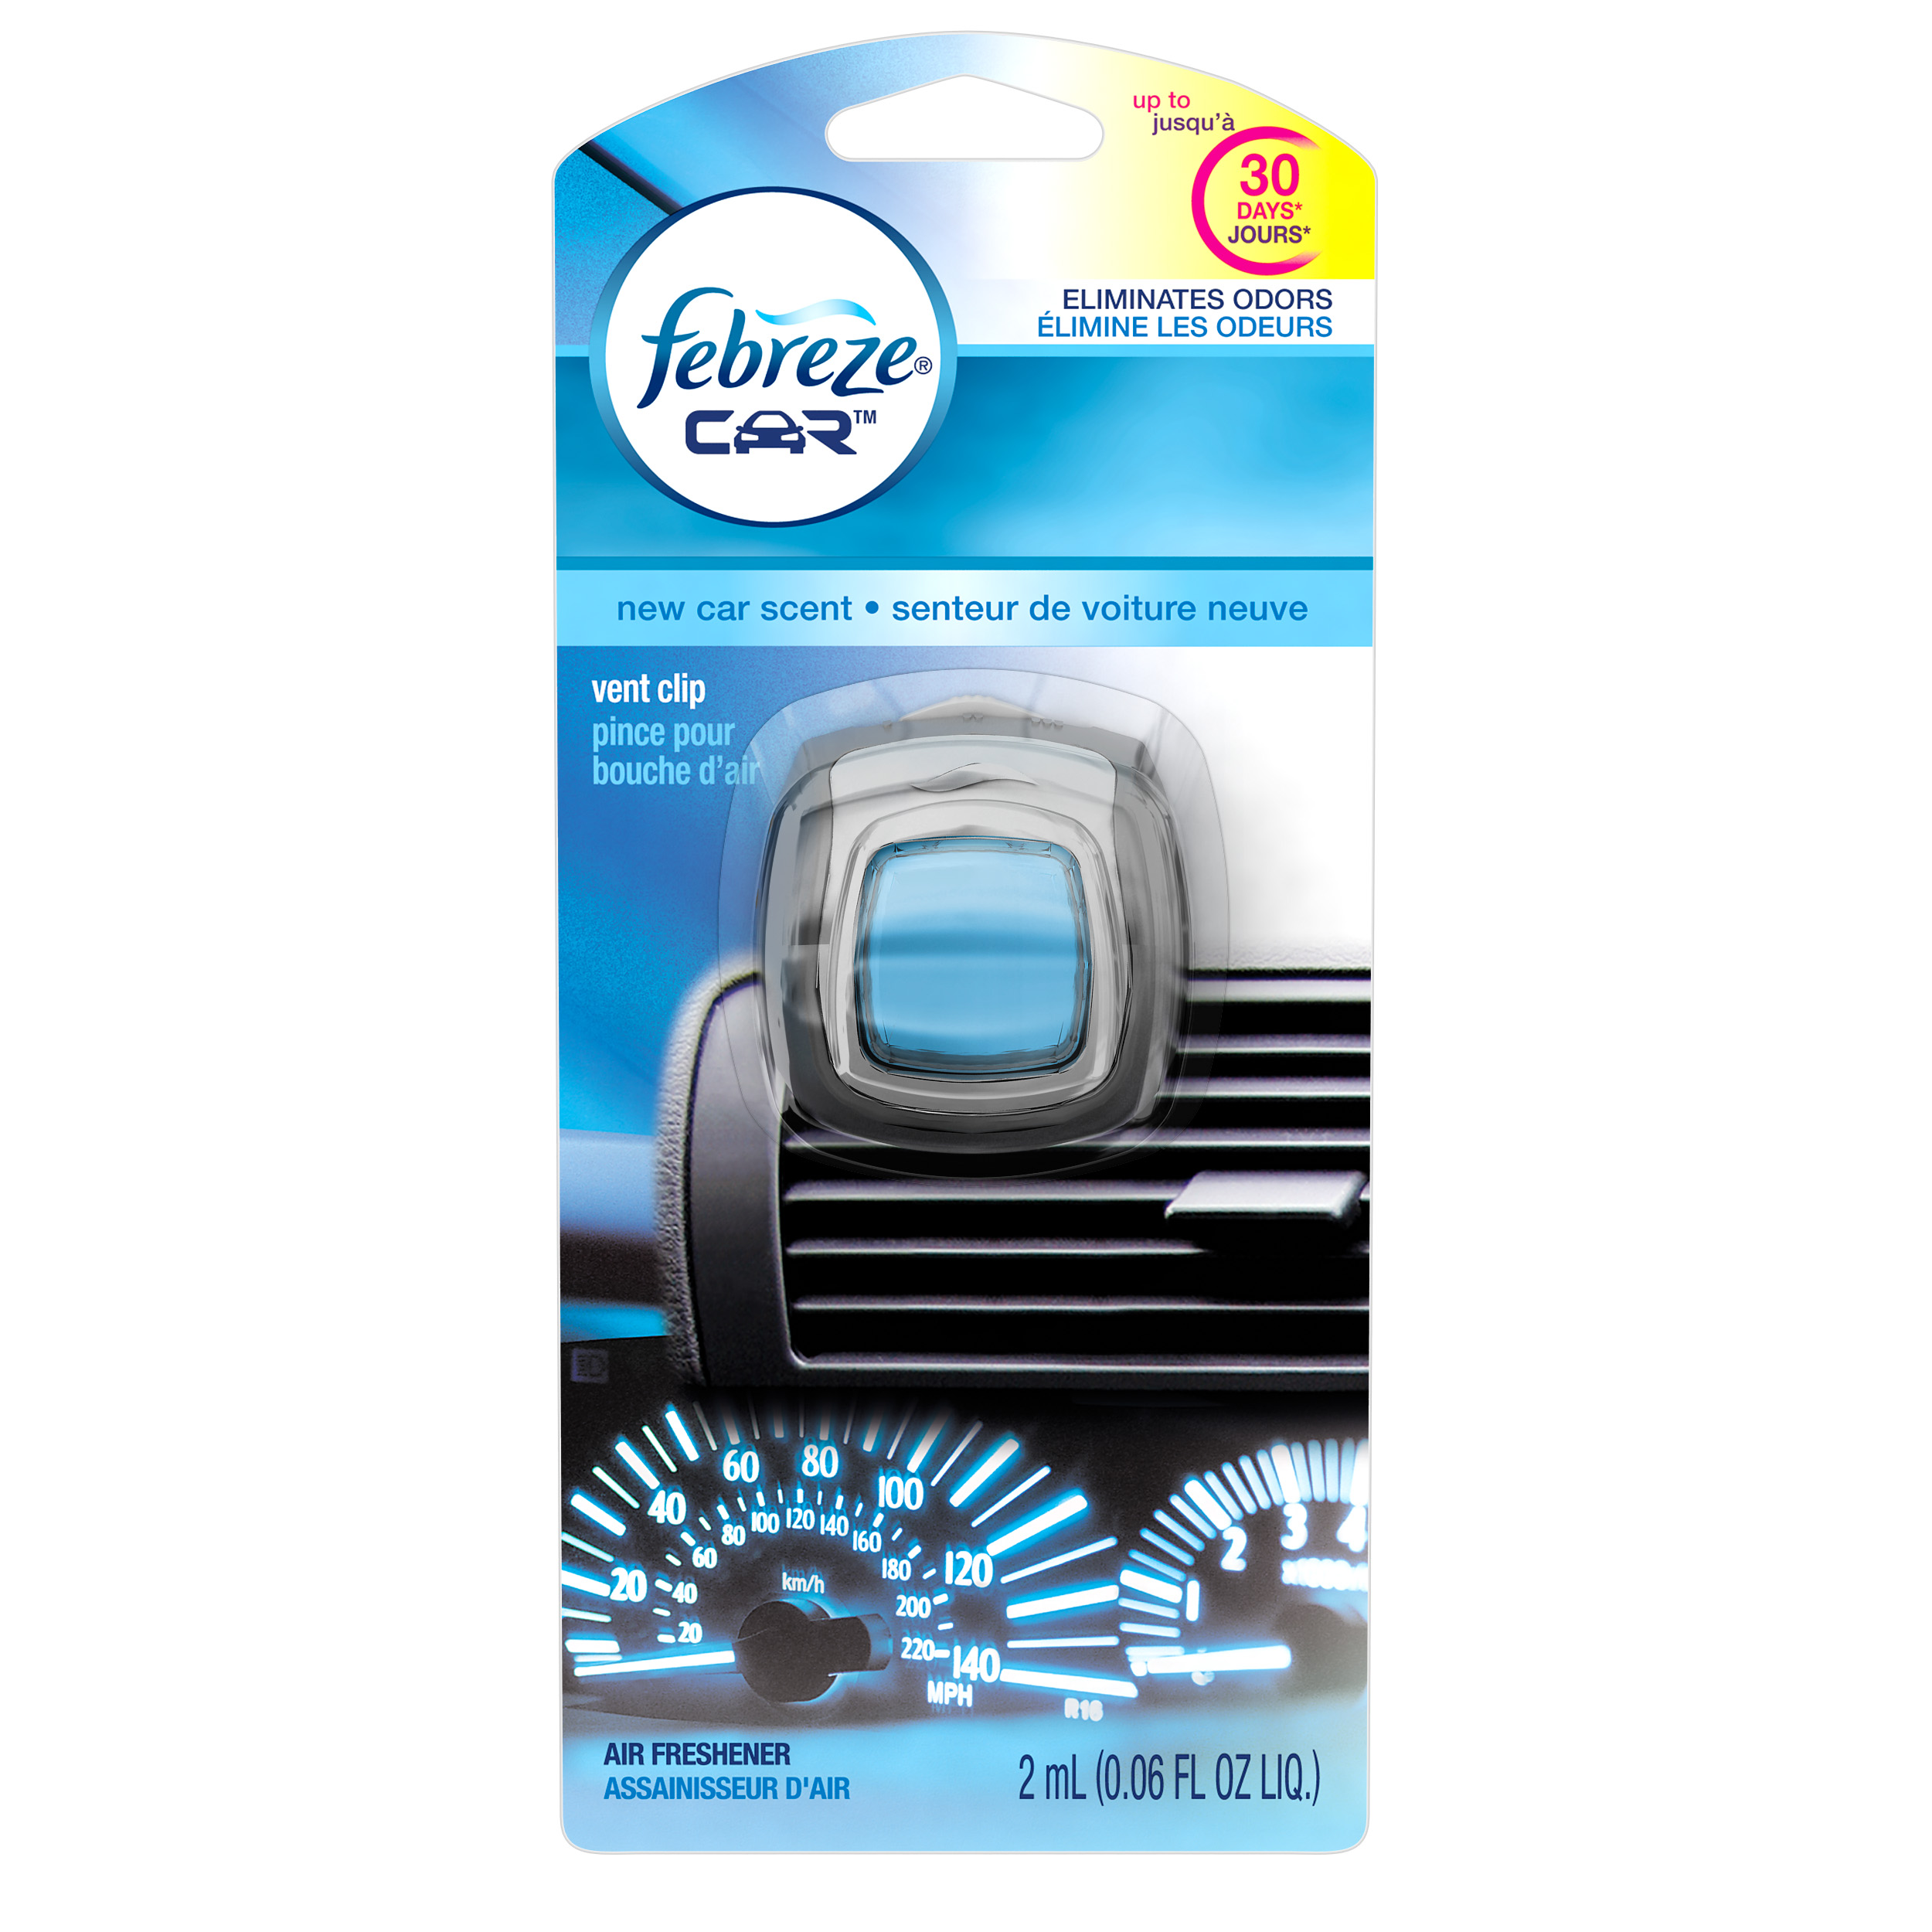 Febreze CAR Air Freshener New Car Scent (1 Count, 0.06 Oz)